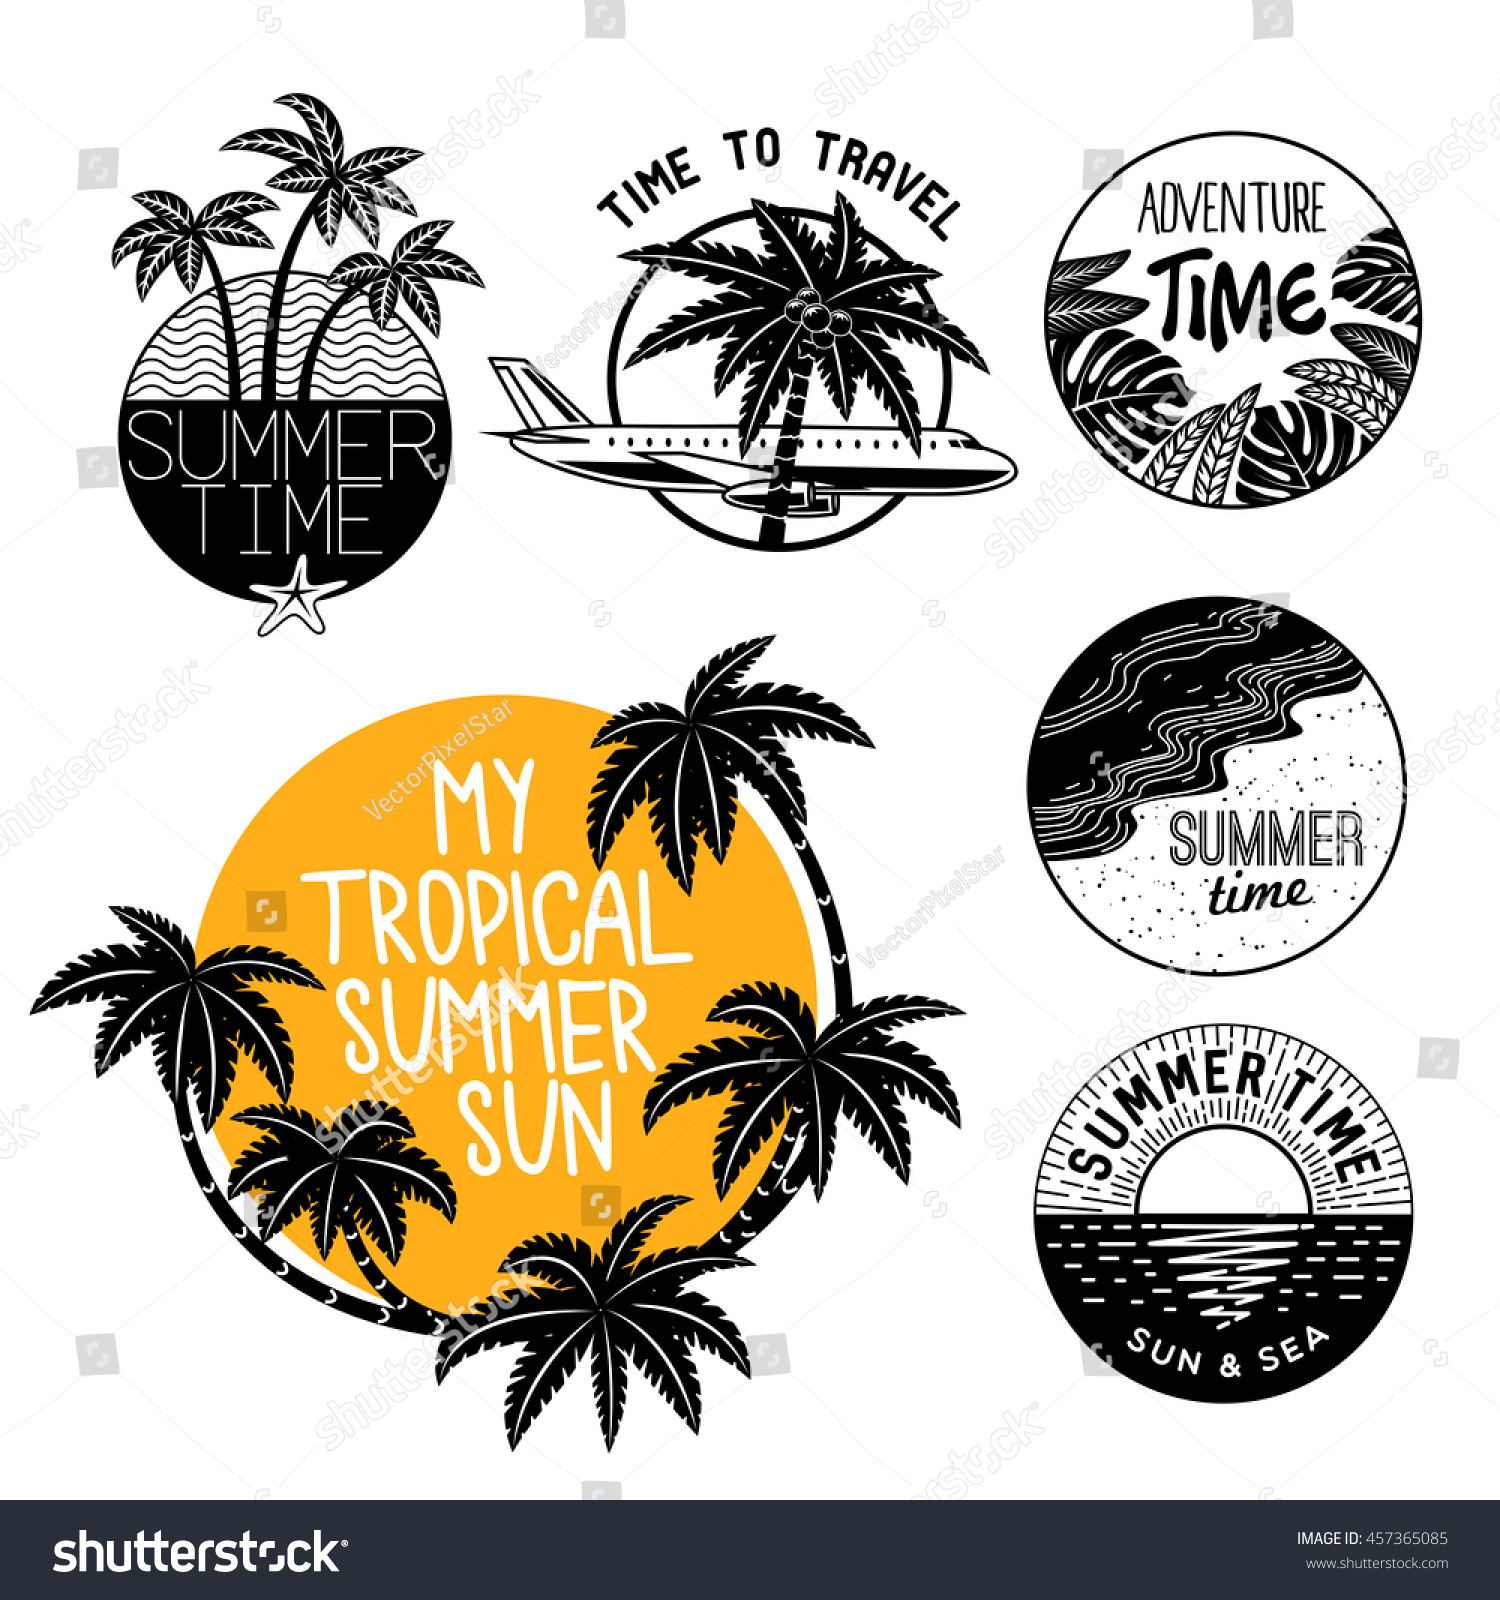 Vector Vintage Pop Art Beach Holiday Illustration Stock: Summer Icons On Holiday Summer Beach Stock Vector